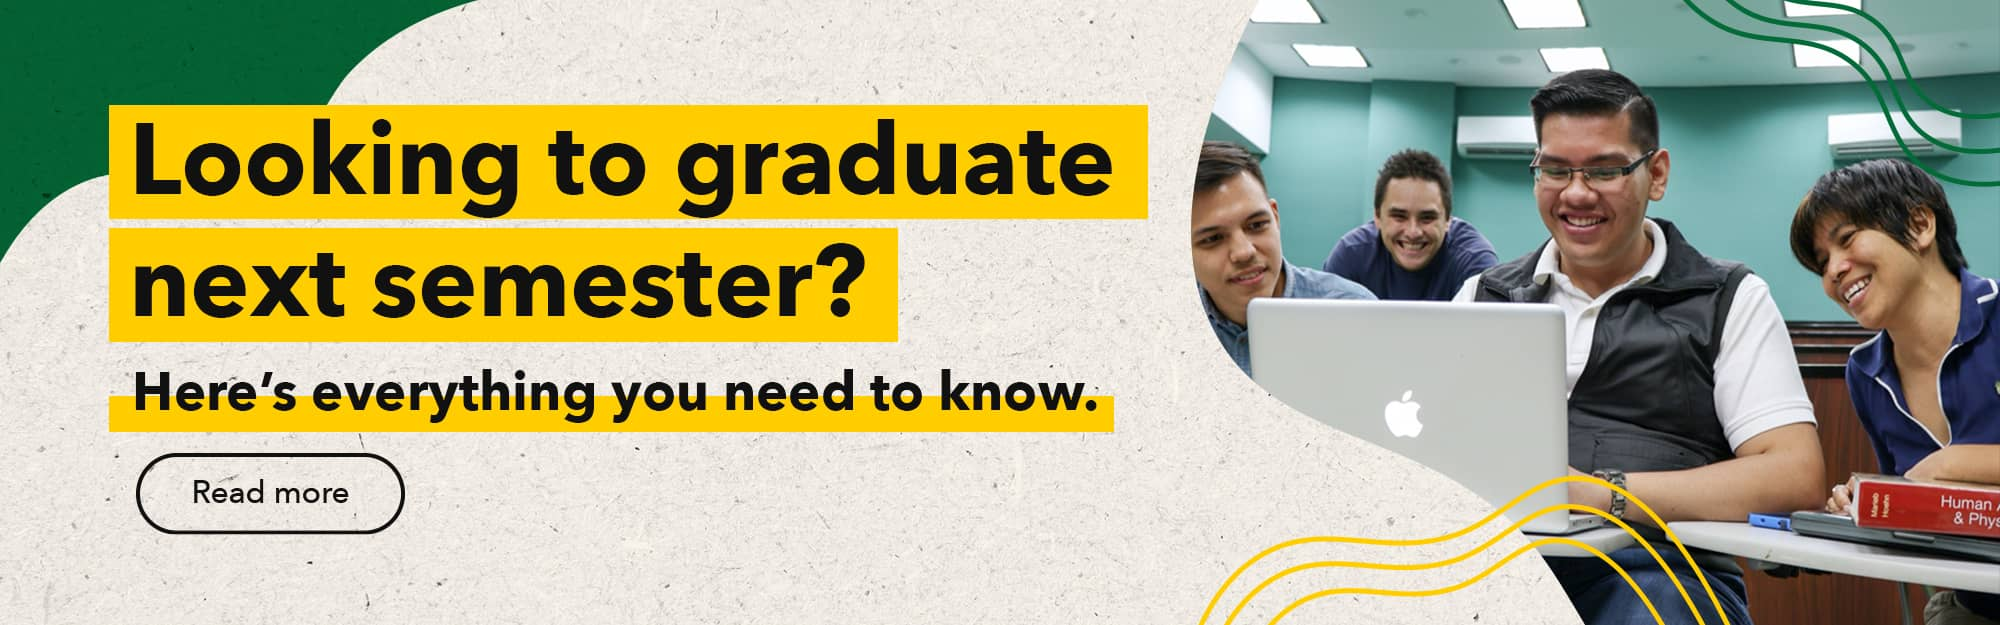 Looking to graduate next semester? Here's everything you need to know.